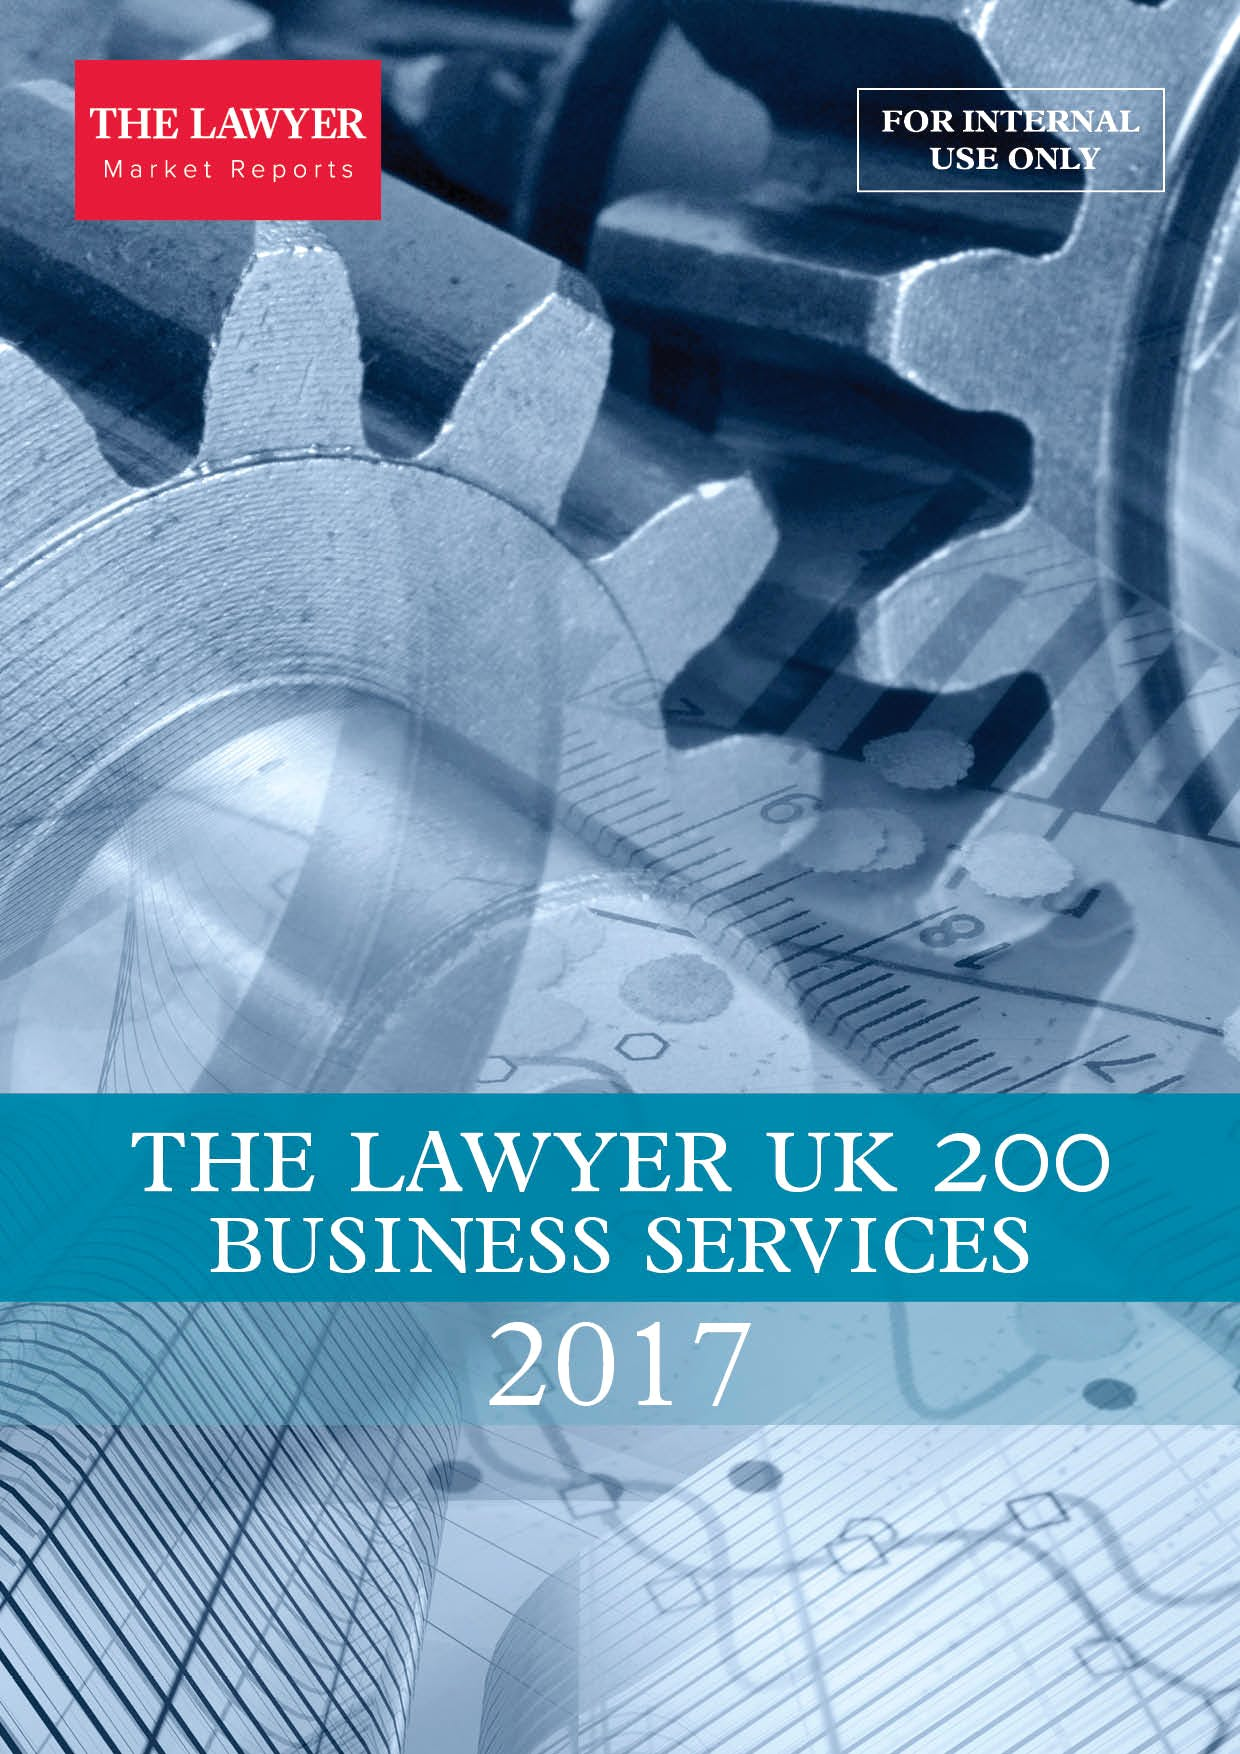 The Lawyer UK 200 Business Services Report